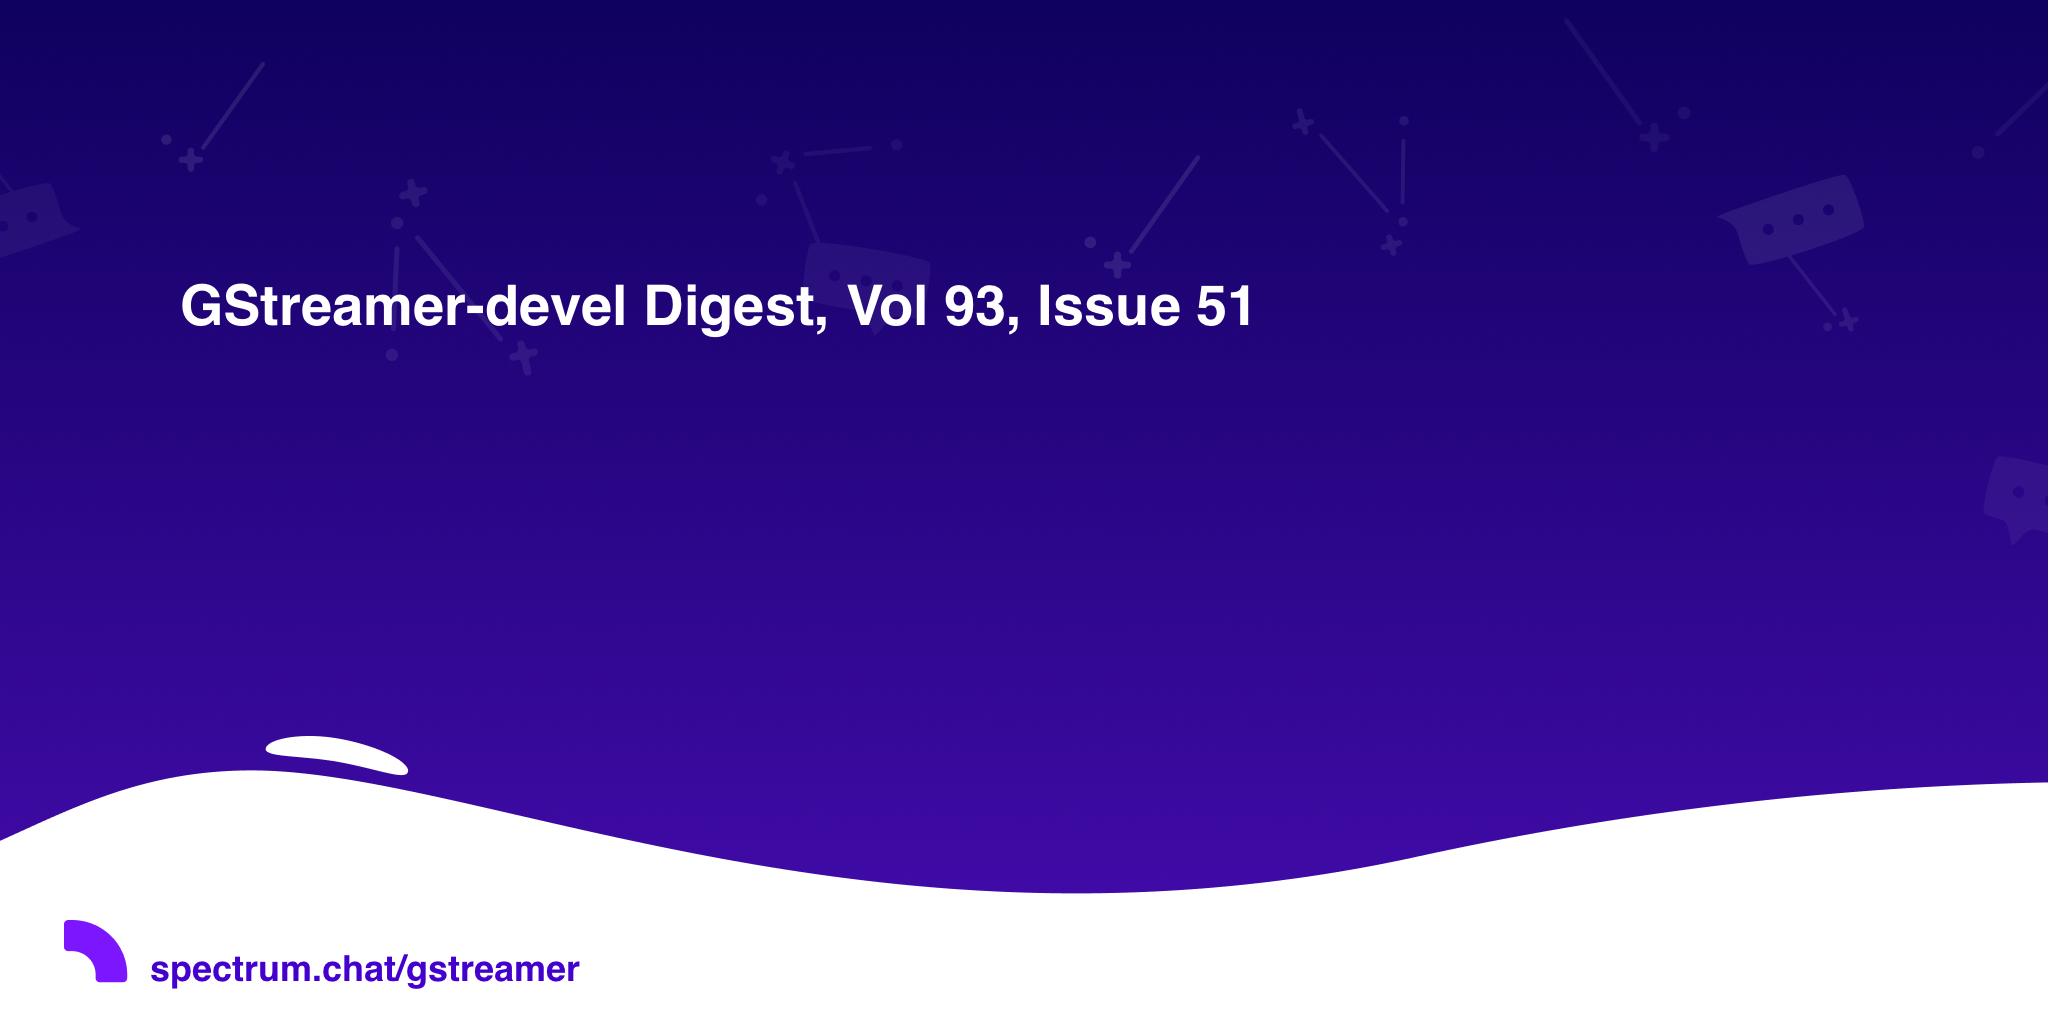 GStreamer-devel Digest, Vol 93, Issue 51 · GStreamer